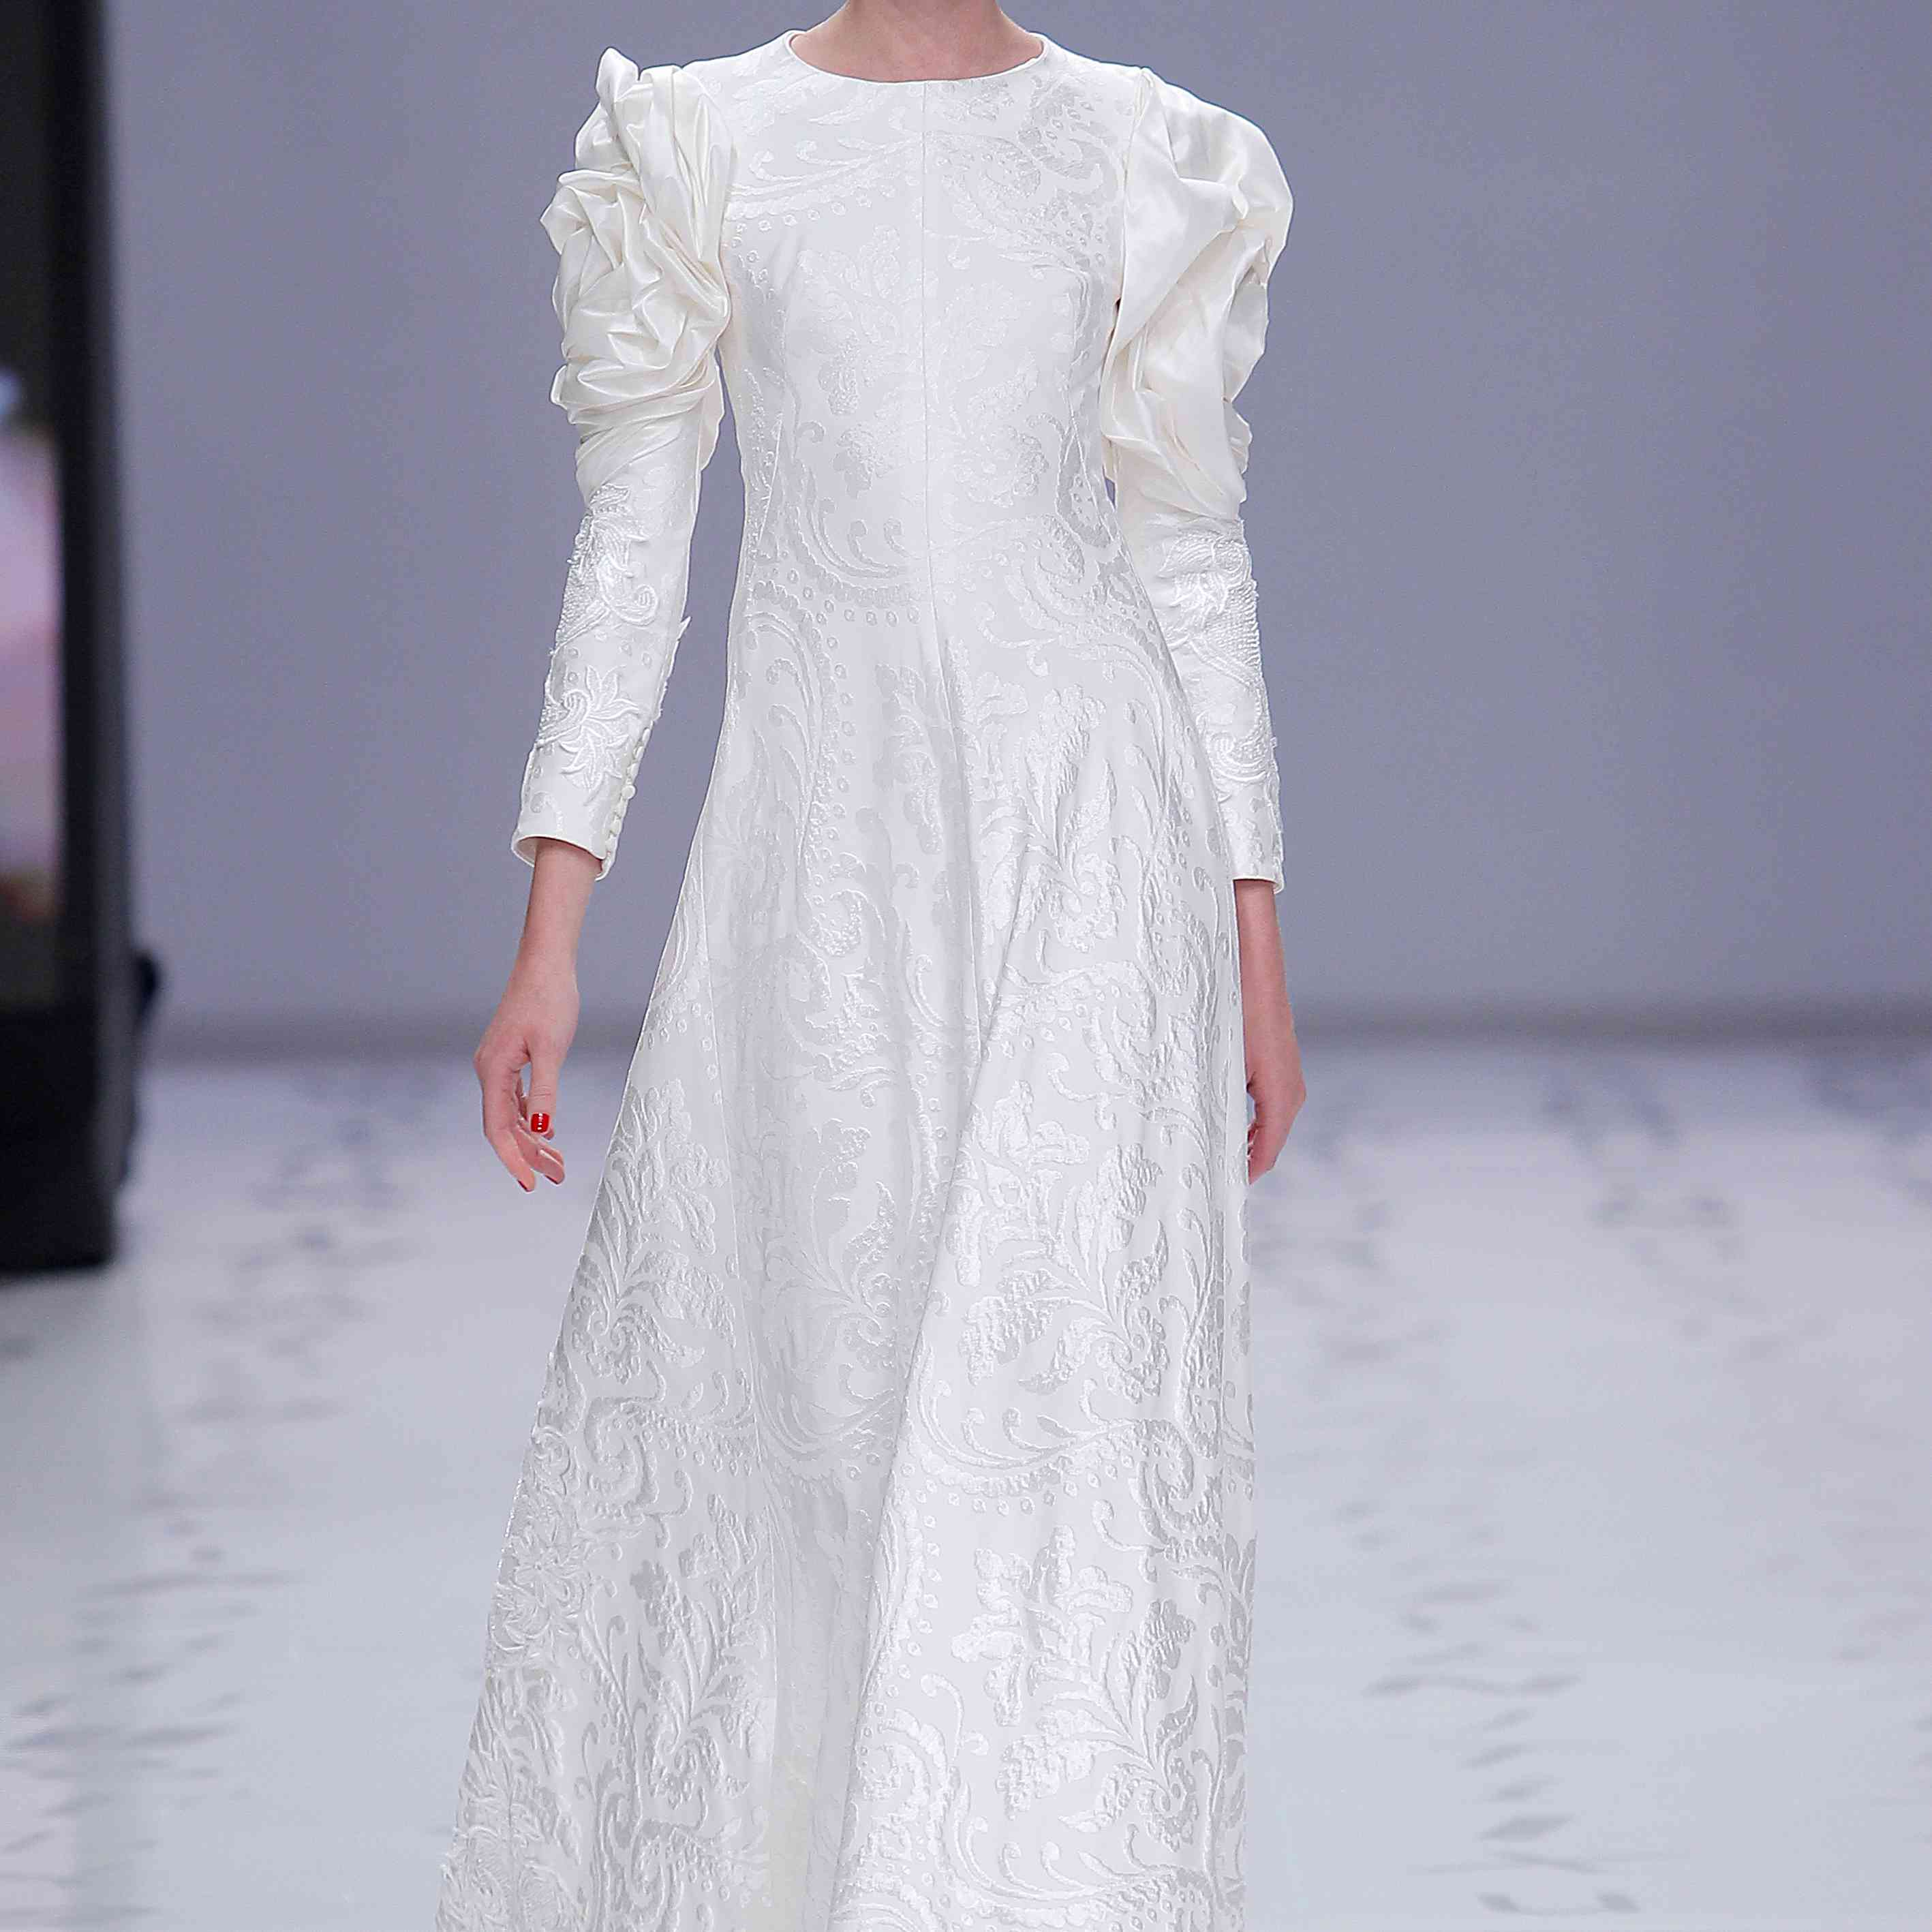 Model in white-on-white damask A-line dress with a round neckline and draped taffeta long sleeves